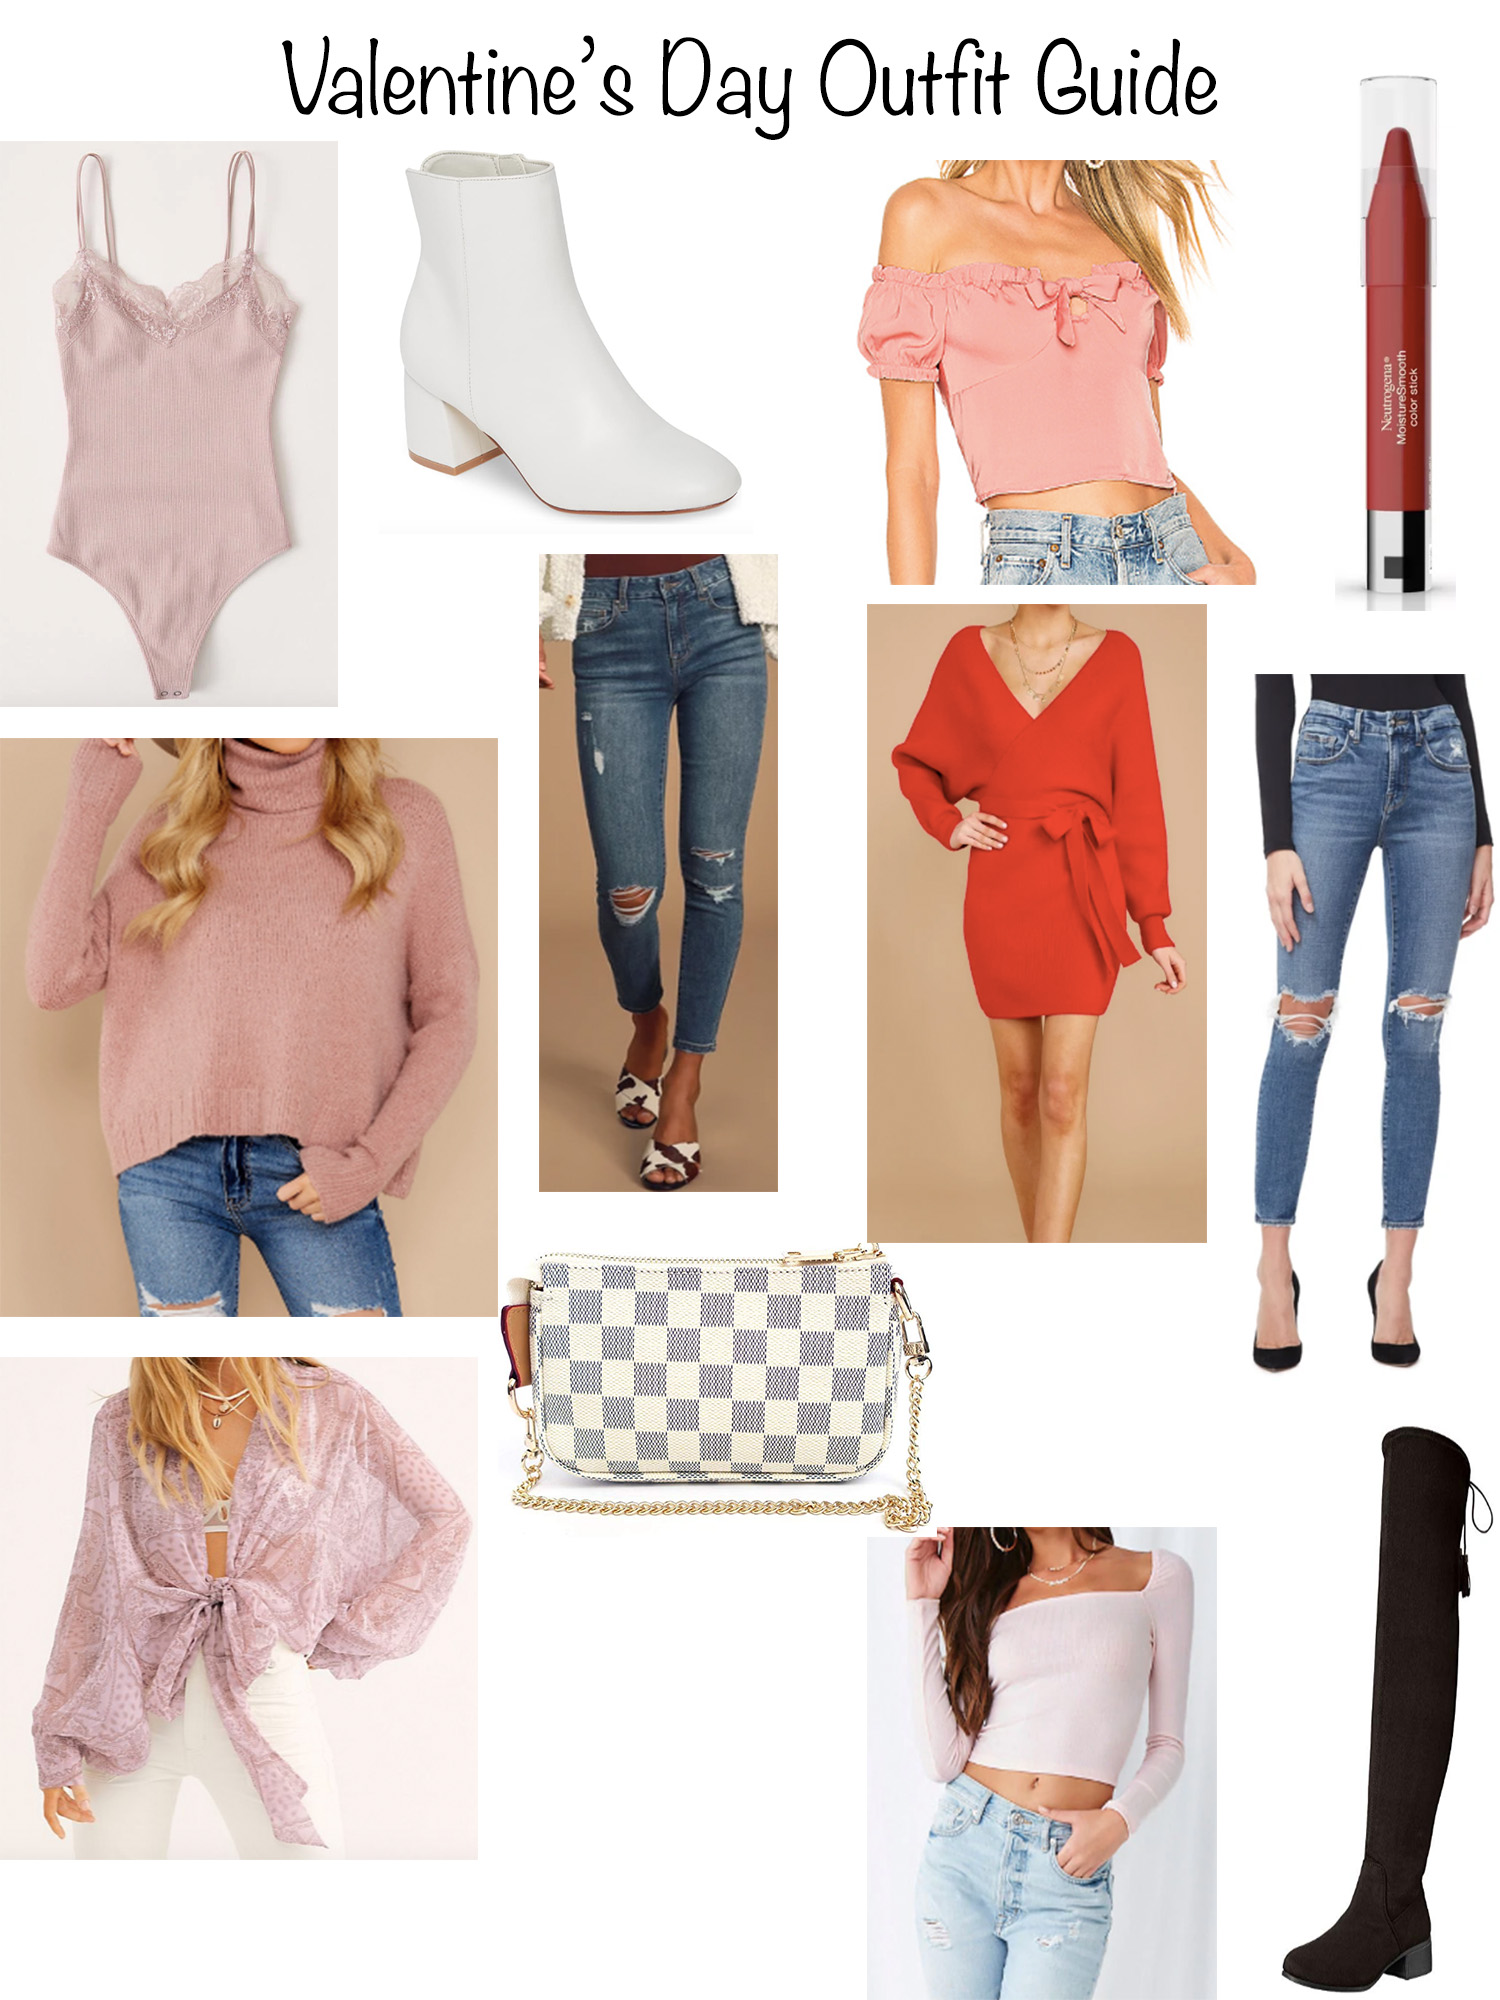 VDay Outfit Guide